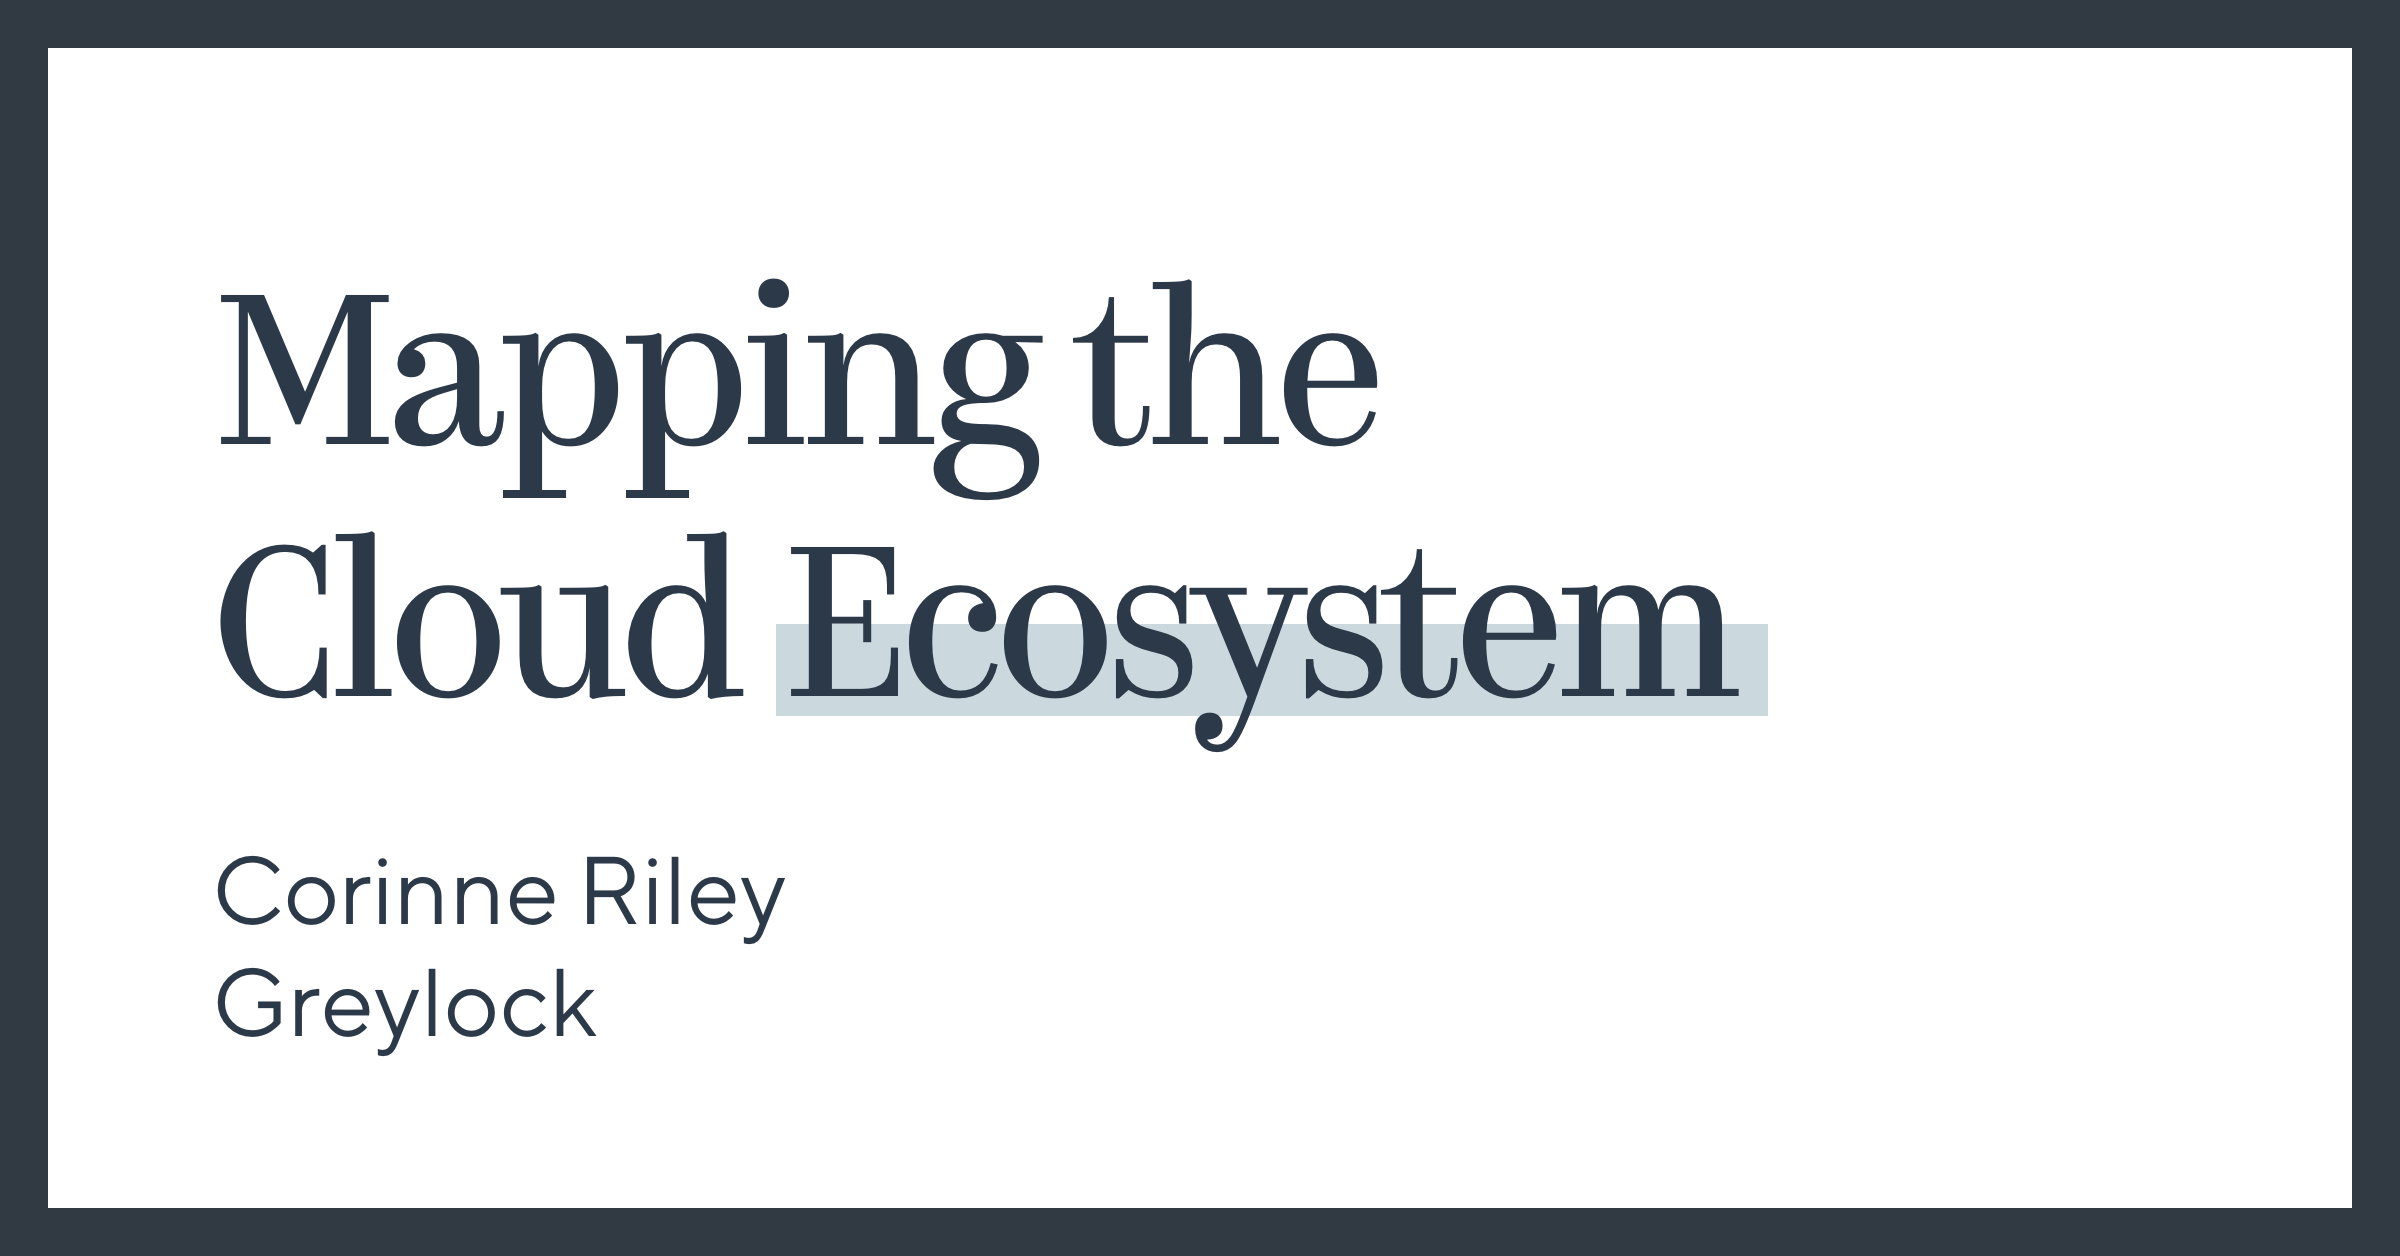 Mapping the Cloud Ecosystem